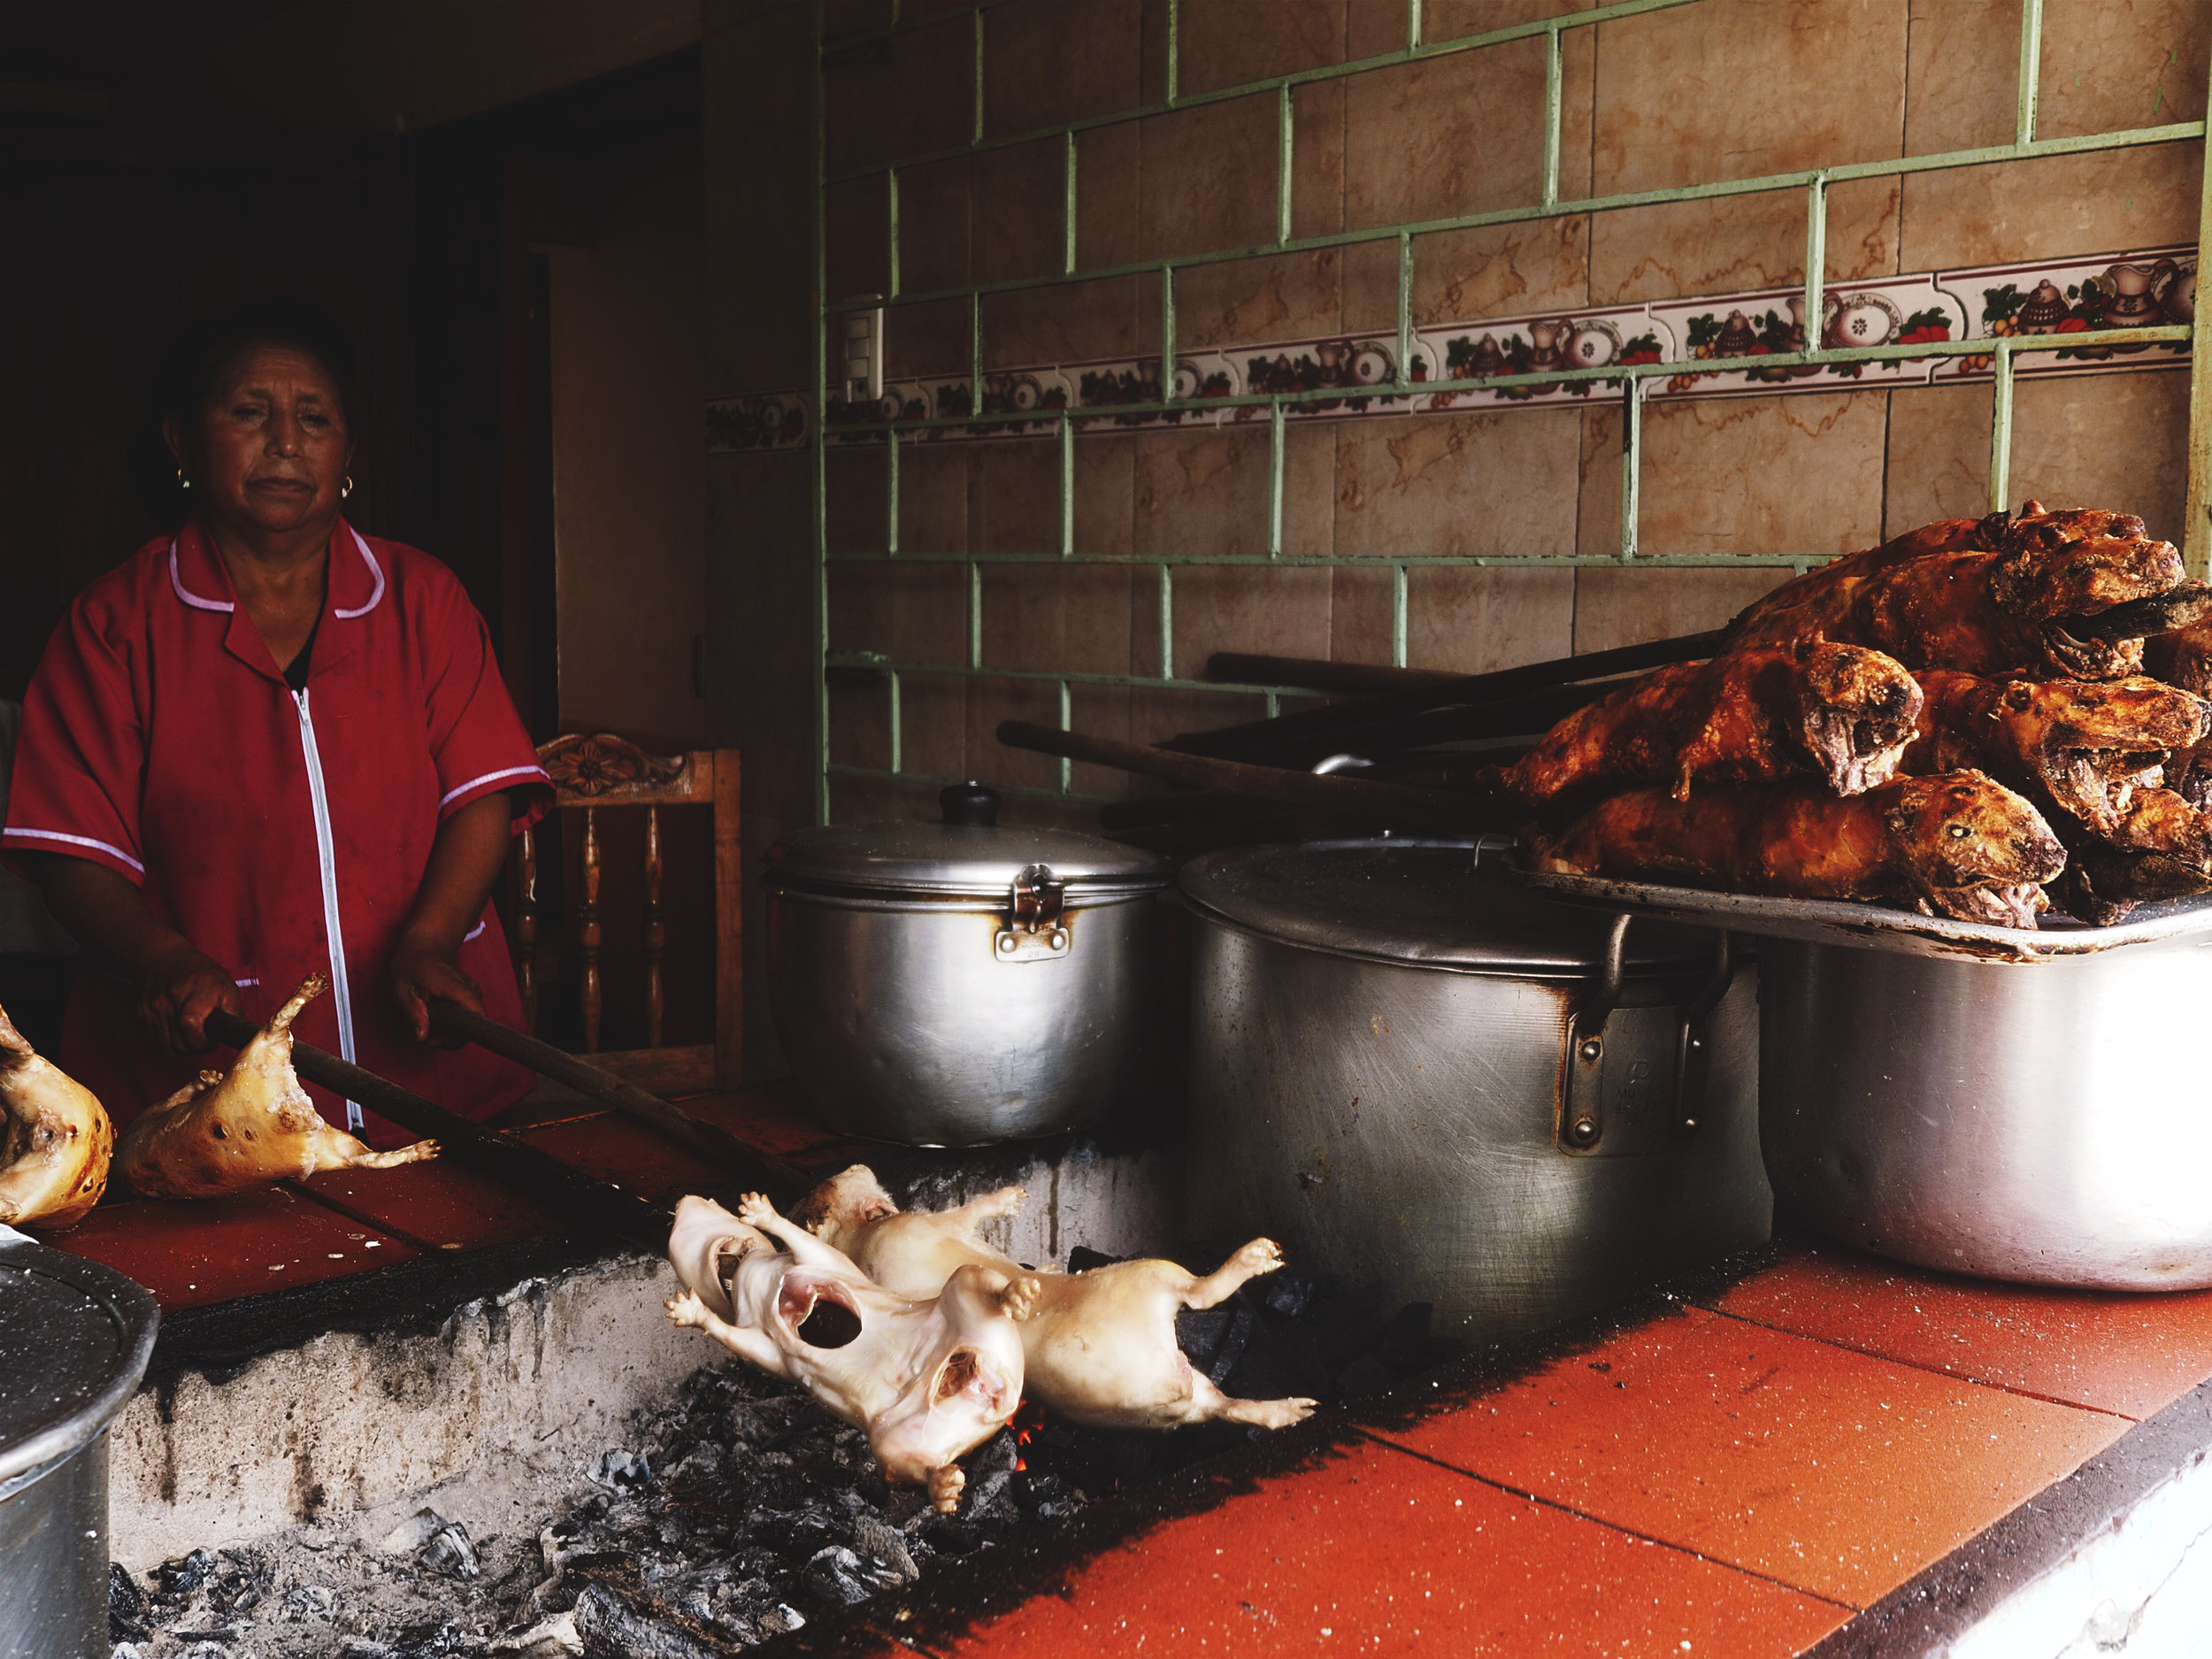 BARBEQUED OR GRILLED CUY (GUINEA PIG) IS A POPULAR DISH AROUND HERE. AS VEGETARIANS, WE ARE UNAPPEALED.